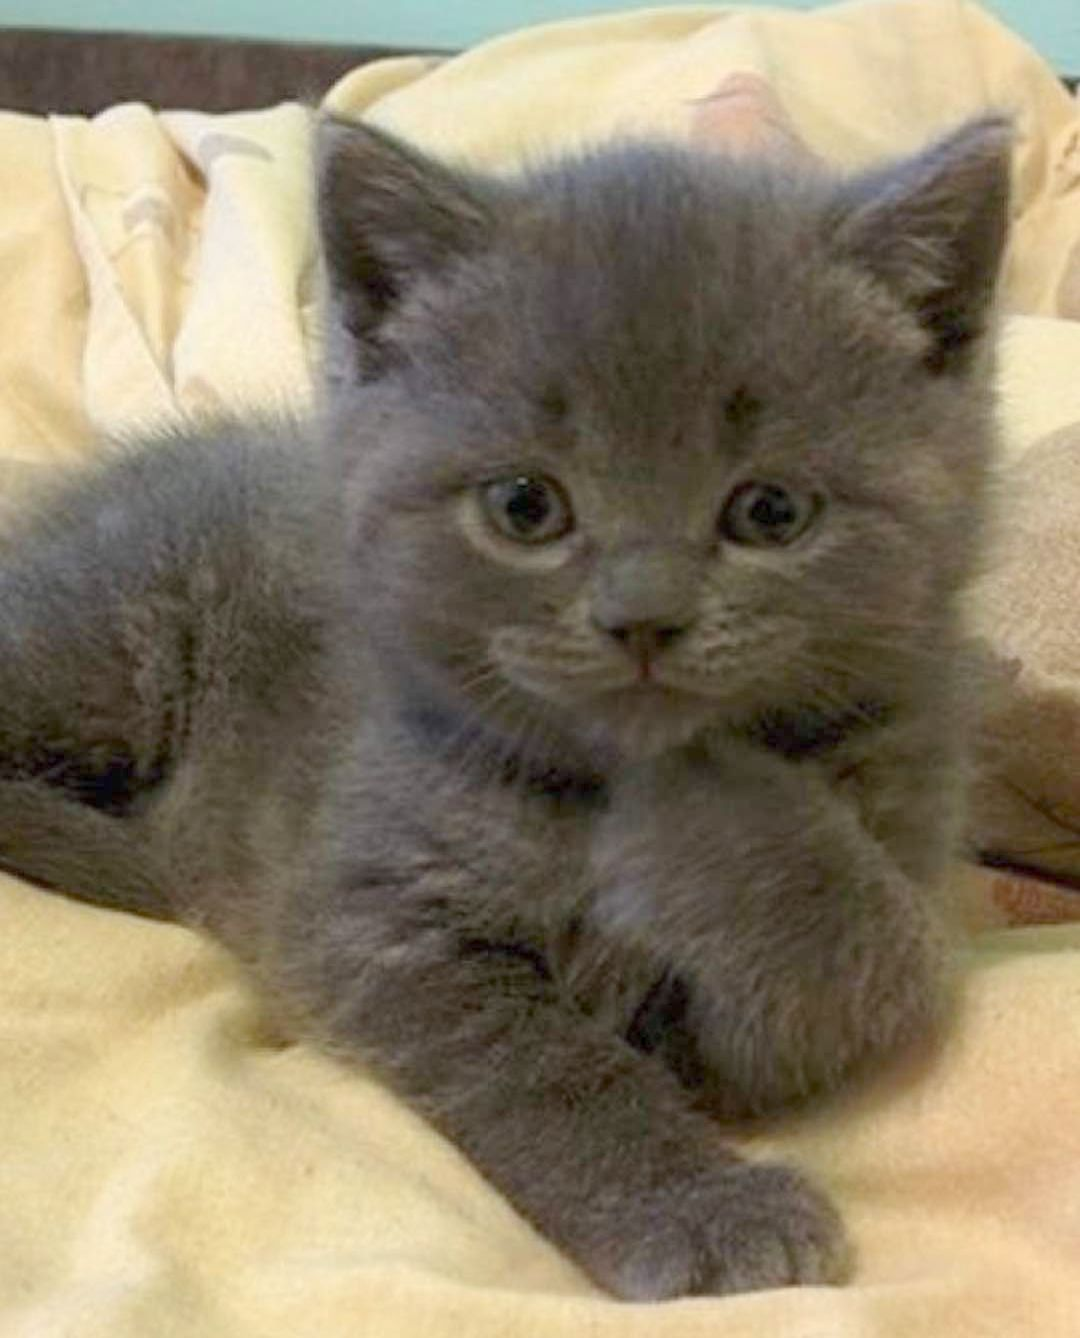 Cats And Kittens Brisbane Cats And Kittens Plant Kittens Cutest Cute Cats Cats